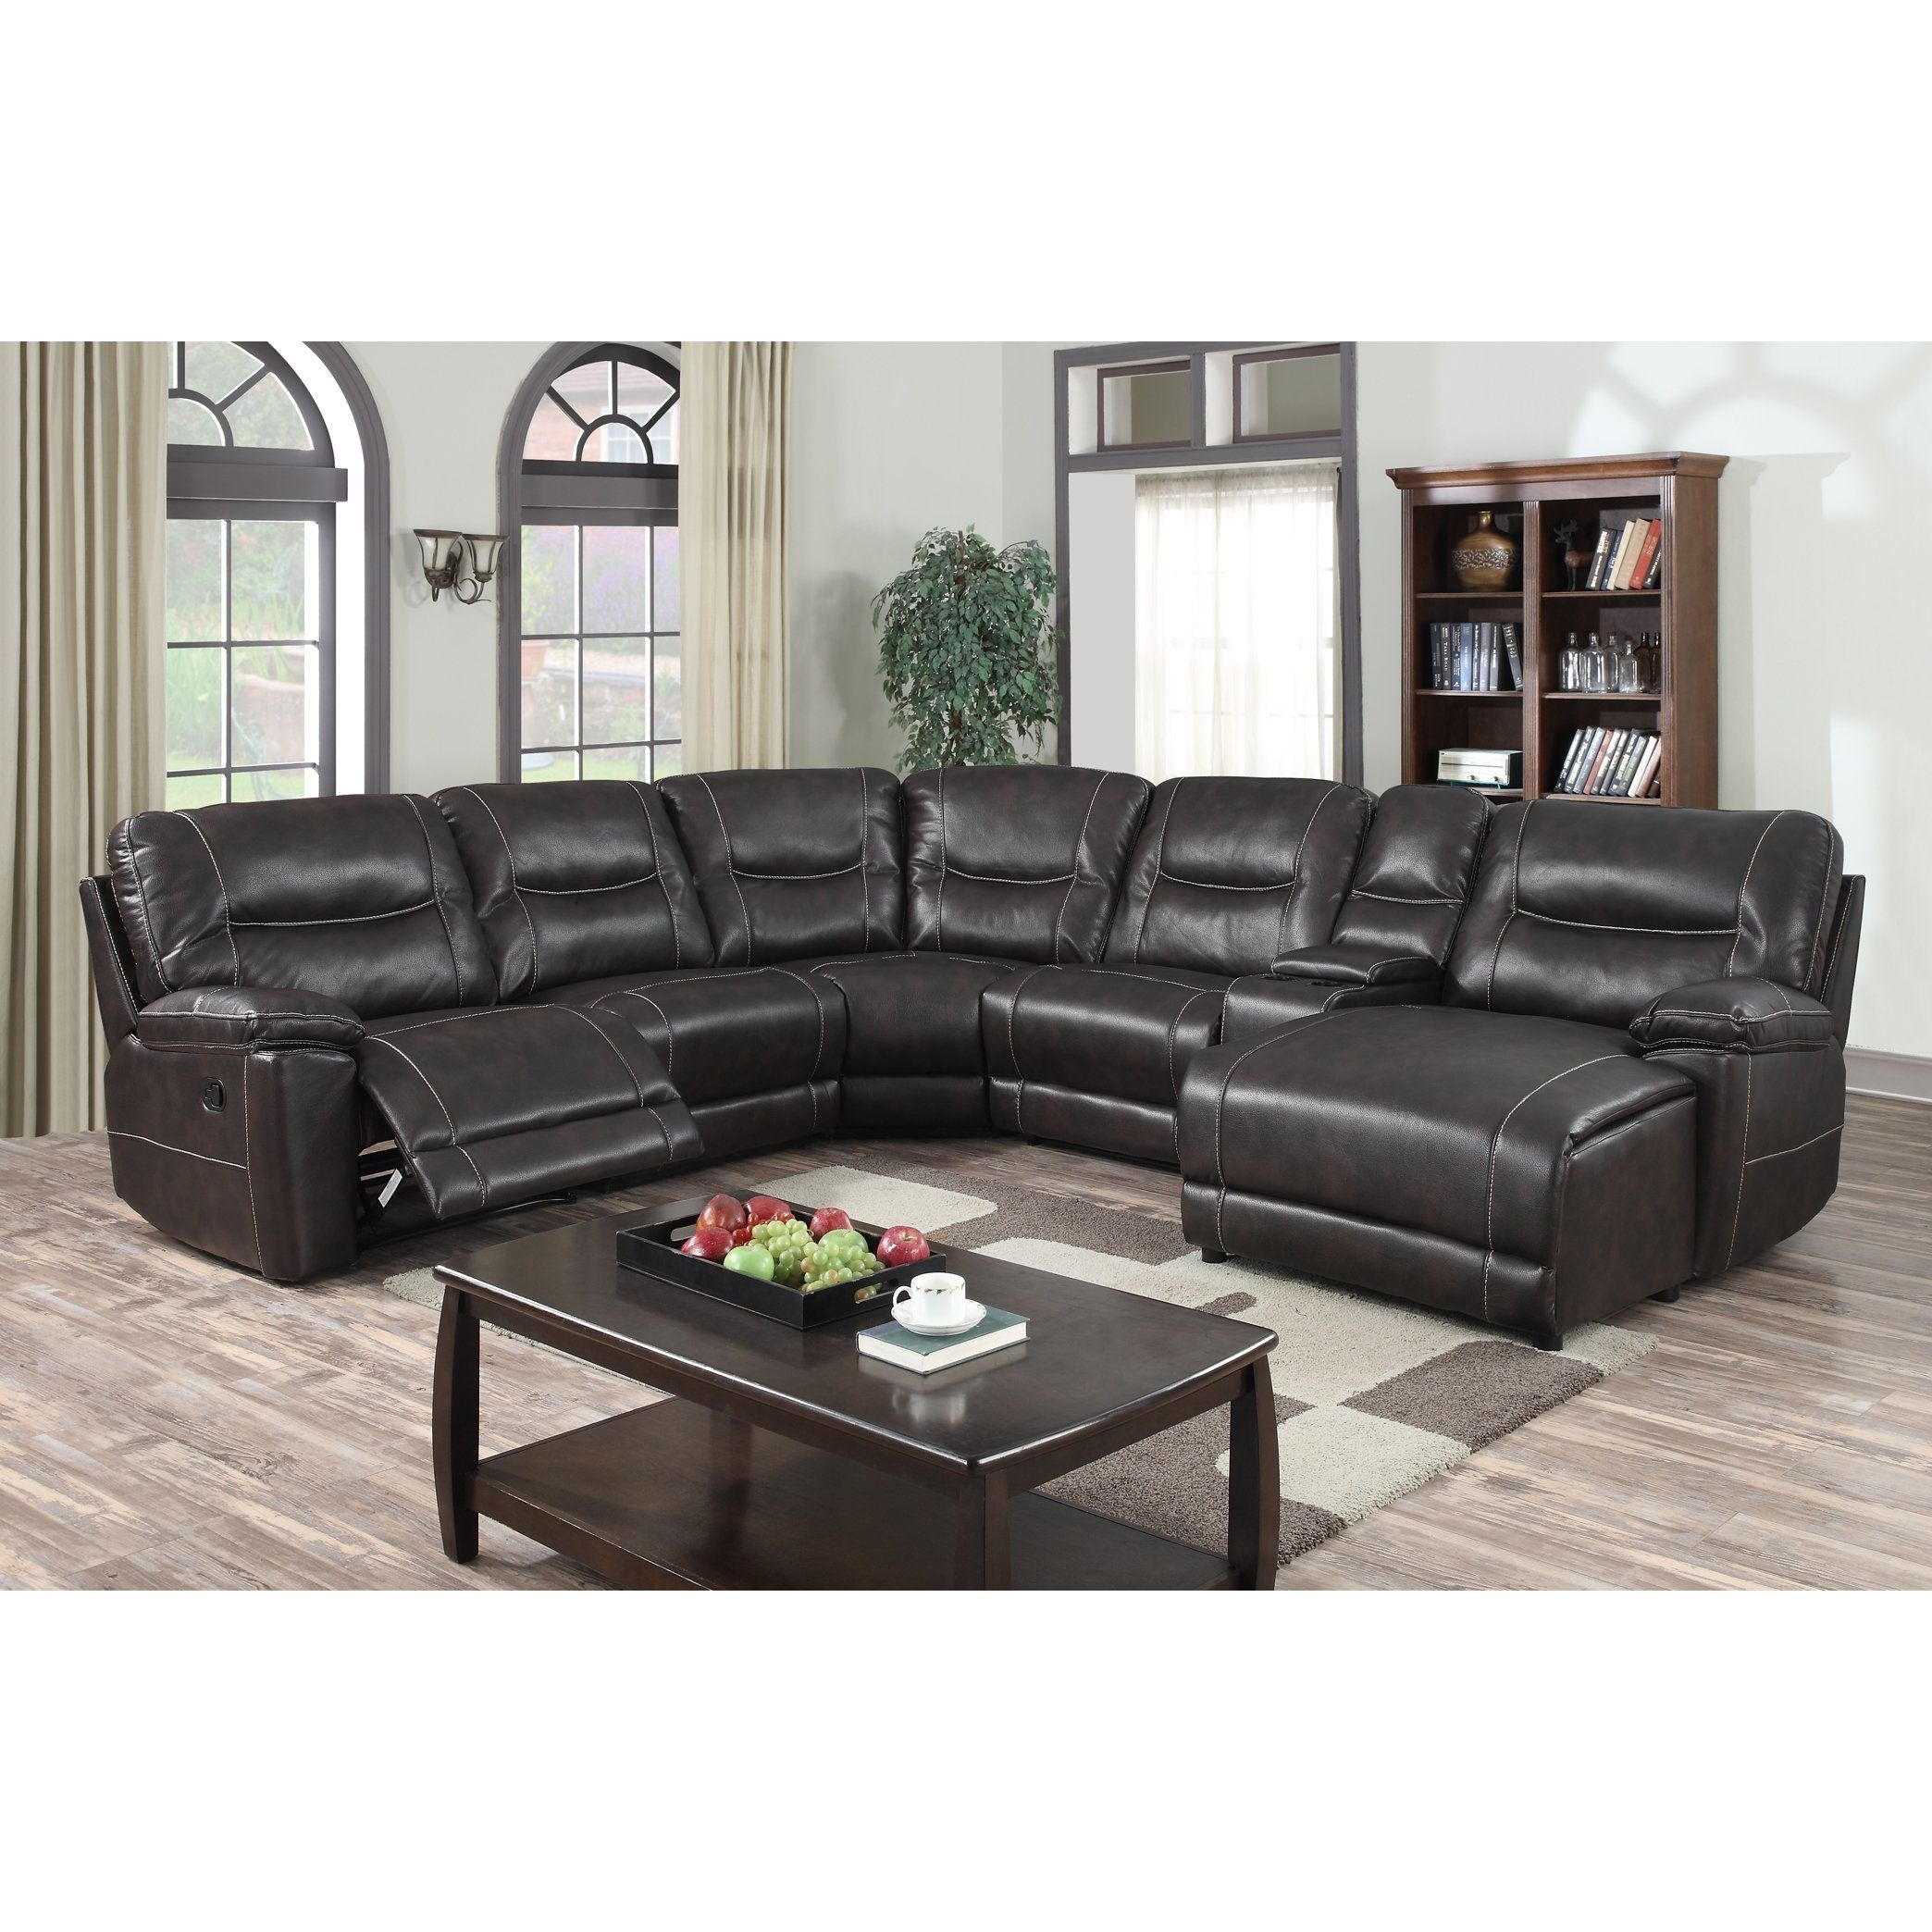 Christopher Reclining Sectional Collection Throughout Denali Charcoal Grey 6 Piece Reclining Sectionals With 2 Power Headrests (Image 10 of 25)